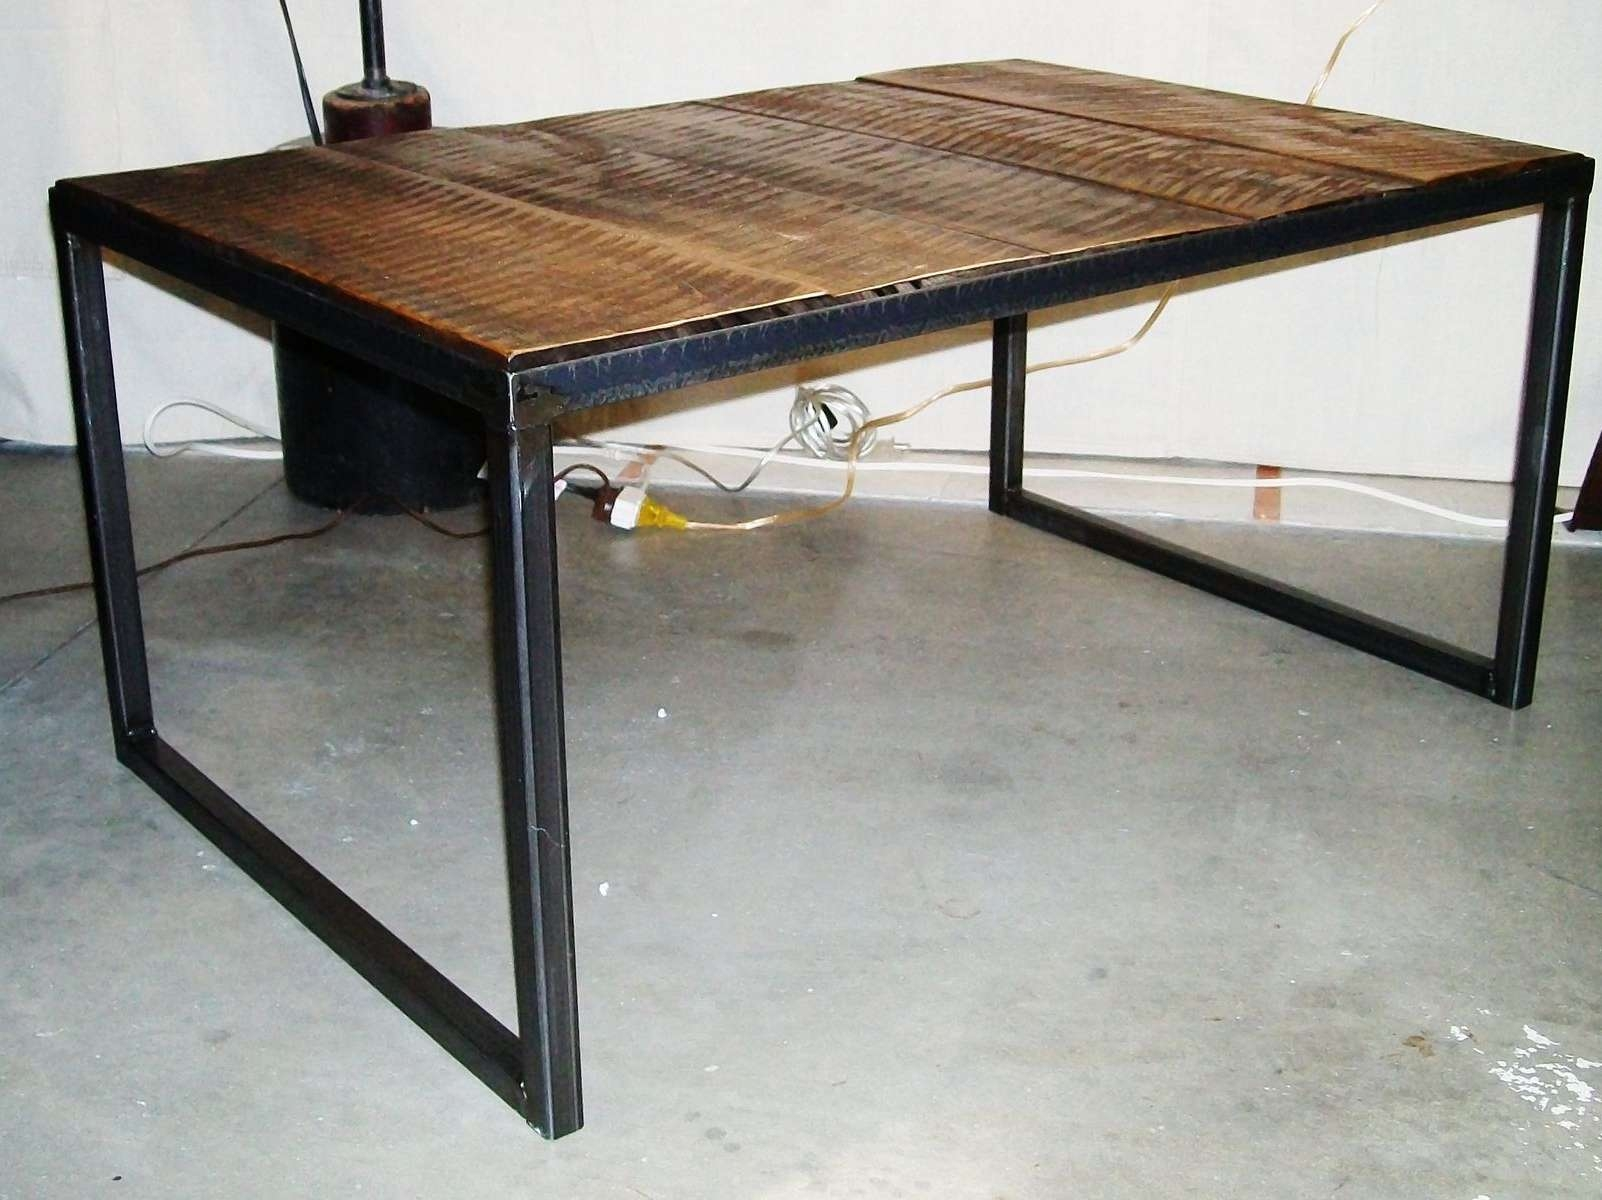 Handmade Industrial Wood & Steel Coffee Tablelucah Designs Regarding Most Popular Wood And Steel Coffee Table (View 5 of 20)